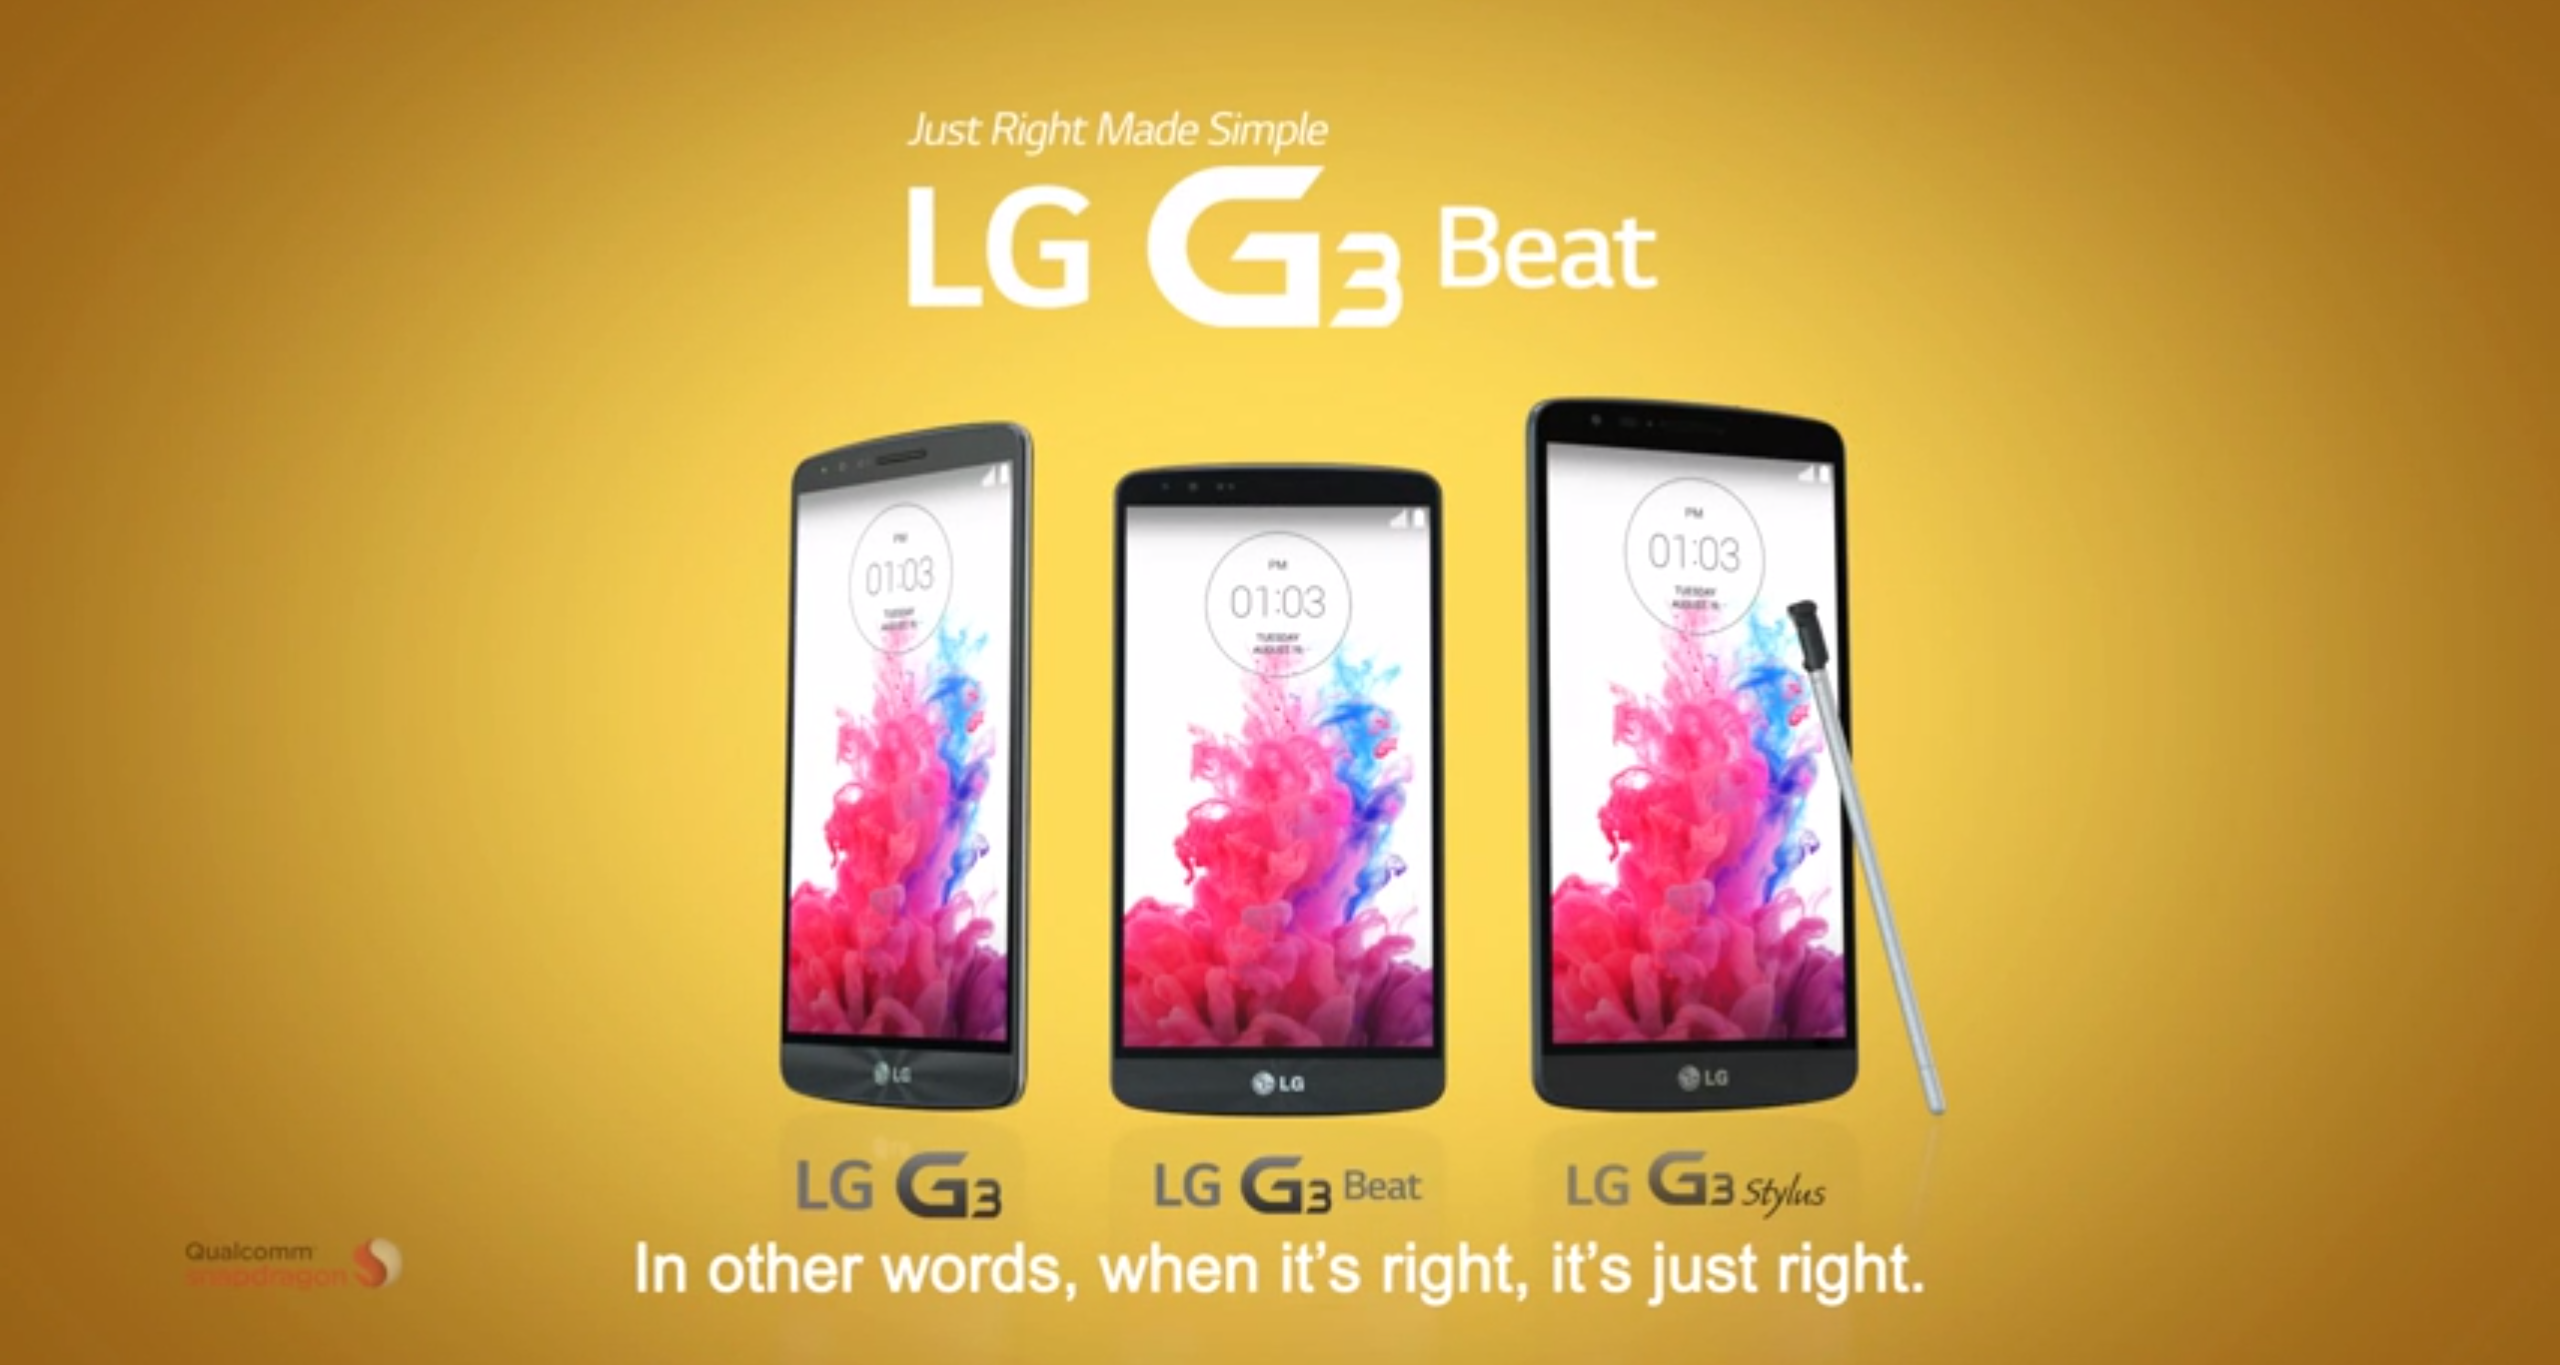 LG G3 Stylus Smartphone Leaks In New G3 Beat Video Ad